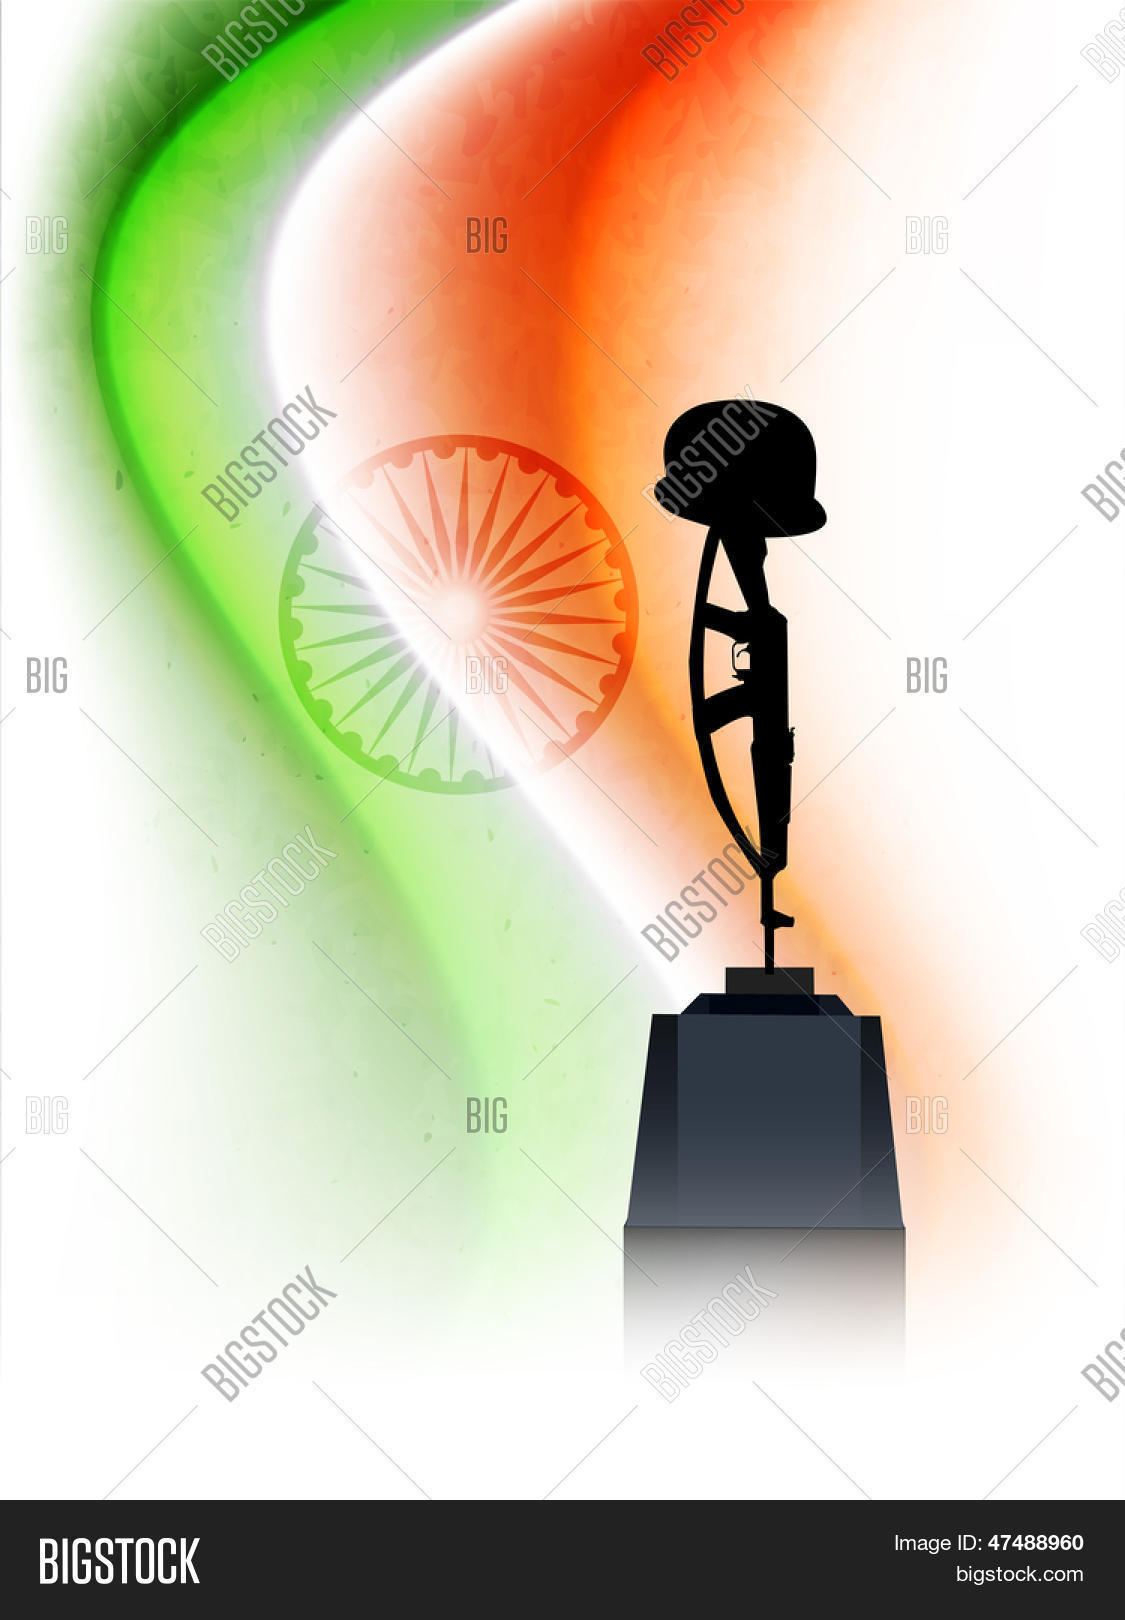 Indian independence vector photo free trial bigstock indian independence day concept with amar jawan jyoti on national flag tricolors wave altavistaventures Choice Image